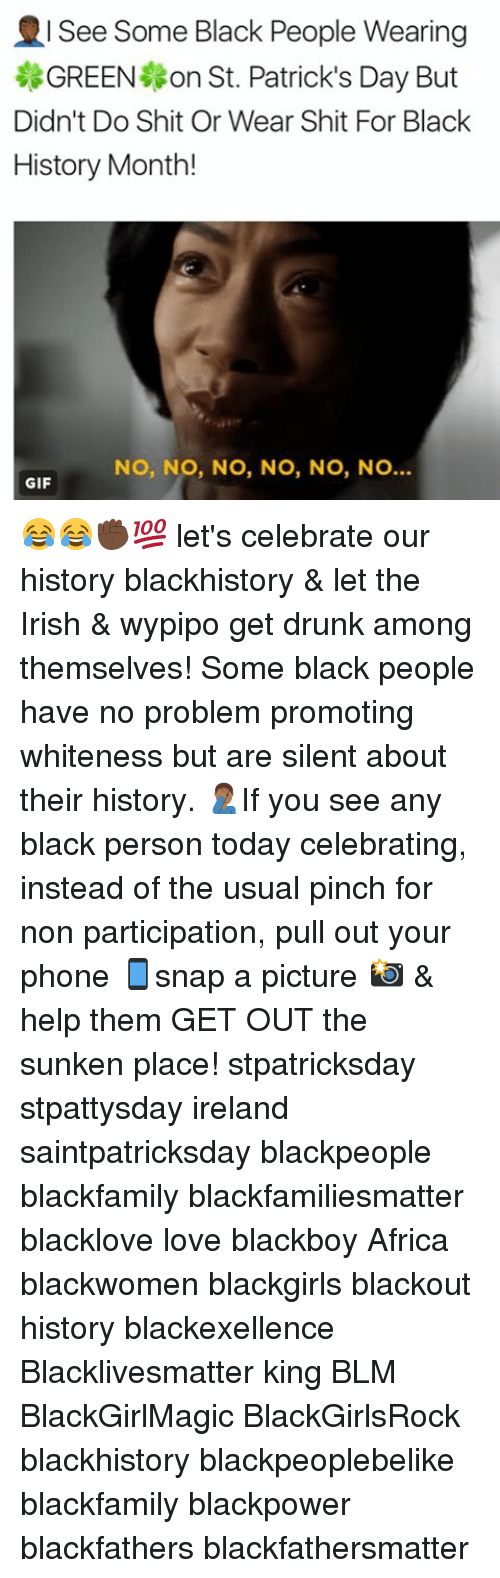 Memes, 🤖, and Personal: See Some Black People Wearing  GREEN on St. Patrick's Day But  Didn't Do Shit Or Wear Shit For Black  History Month!  NO, NO, NO, NO, NO, NO  GIF 😂😂✊🏿💯 let's celebrate our history blackhistory & let the Irish & wypipo get drunk among themselves! Some black people have no problem promoting whiteness but are silent about their history. 🤦🏾‍♂️If you see any black person today celebrating, instead of the usual pinch for non participation, pull out your phone 📱snap a picture 📸 & help them GET OUT the sunken place! stpatricksday stpattysday ireland saintpatricksday blackpeople blackfamily blackfamiliesmatter blacklove love blackboy Africa blackwomen blackgirls blackout history blackexellence Blacklivesmatter king BLM BlackGirlMagic BlackGirlsRock blackhistory blackpeoplebelike blackfamily blackpower blackfathers blackfathersmatter